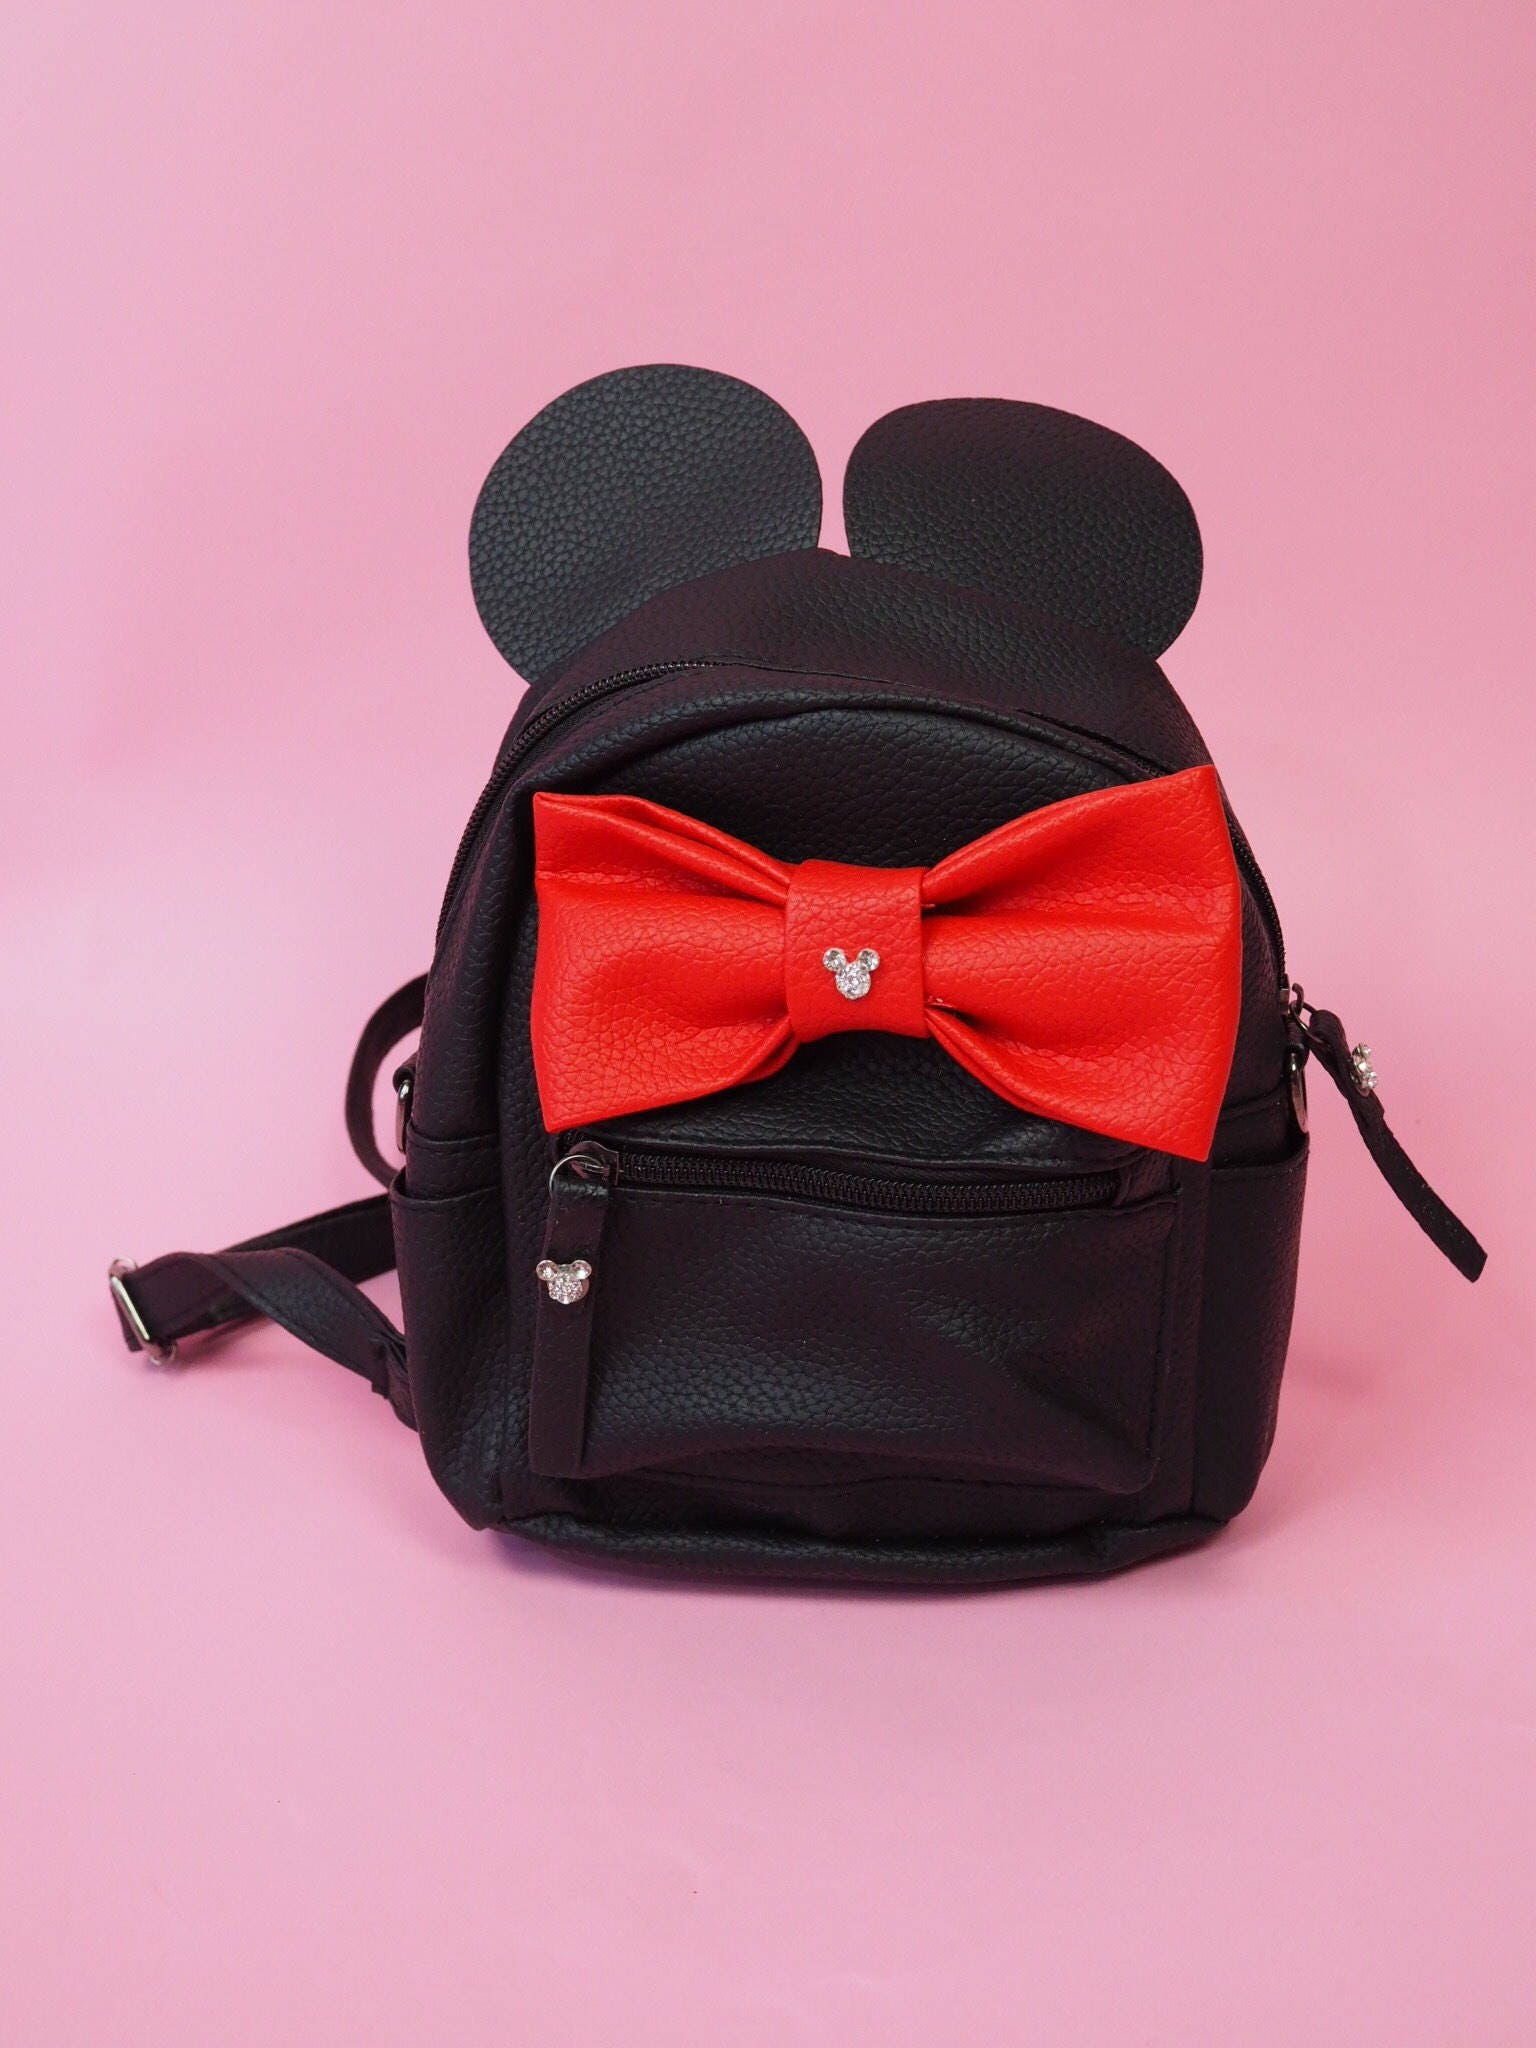 Disney Inspired Minnie Mouse Black Mini Backpack with Ears and